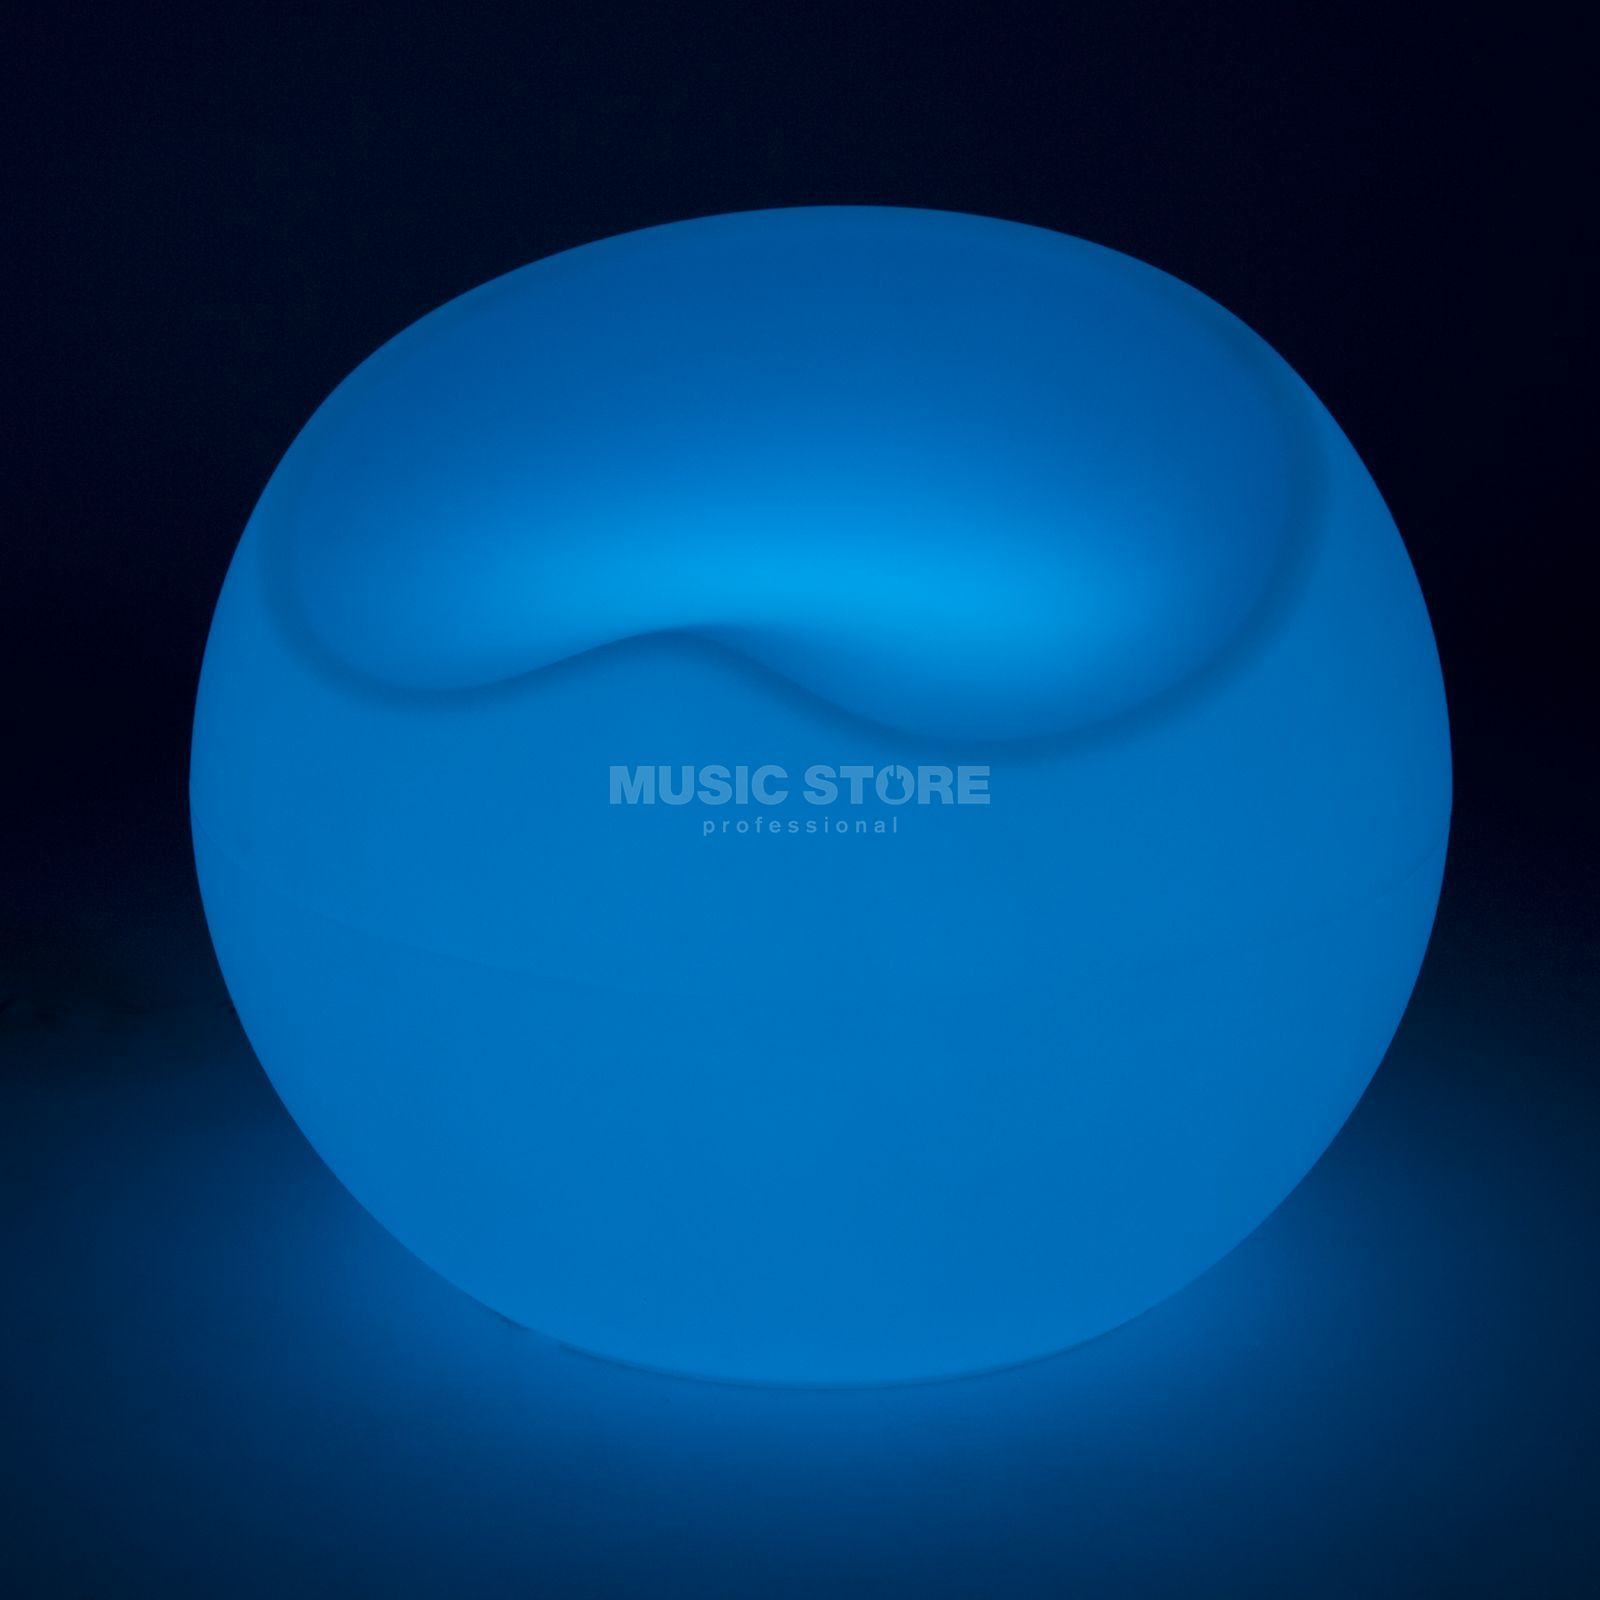 lightmaXX chilLED SEAT SPHERE IR 65x65x50cm, IP65 Product Image